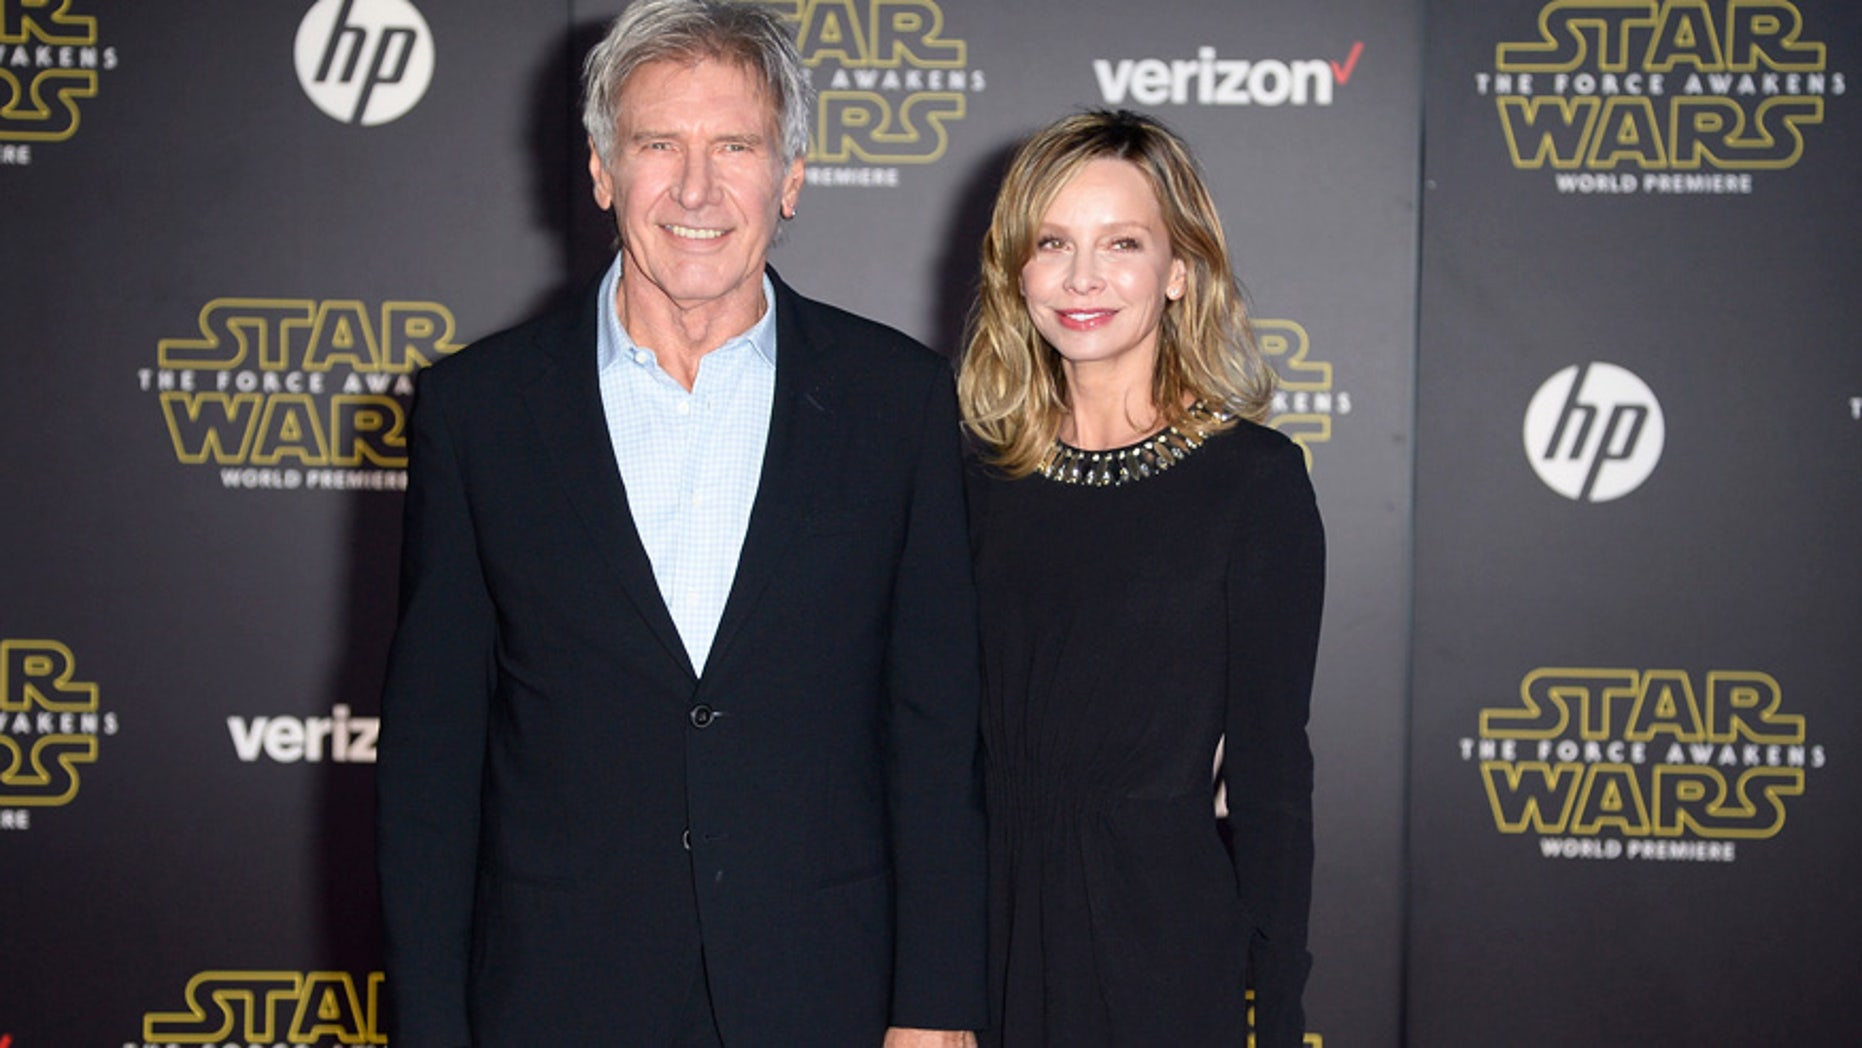 """Actor Harrison Ford and his wife, actress Calista Flockhart, arrive at the premiere of """"Star Wars: The Force Awakens"""" in Hollywood, California December 14, 2015."""